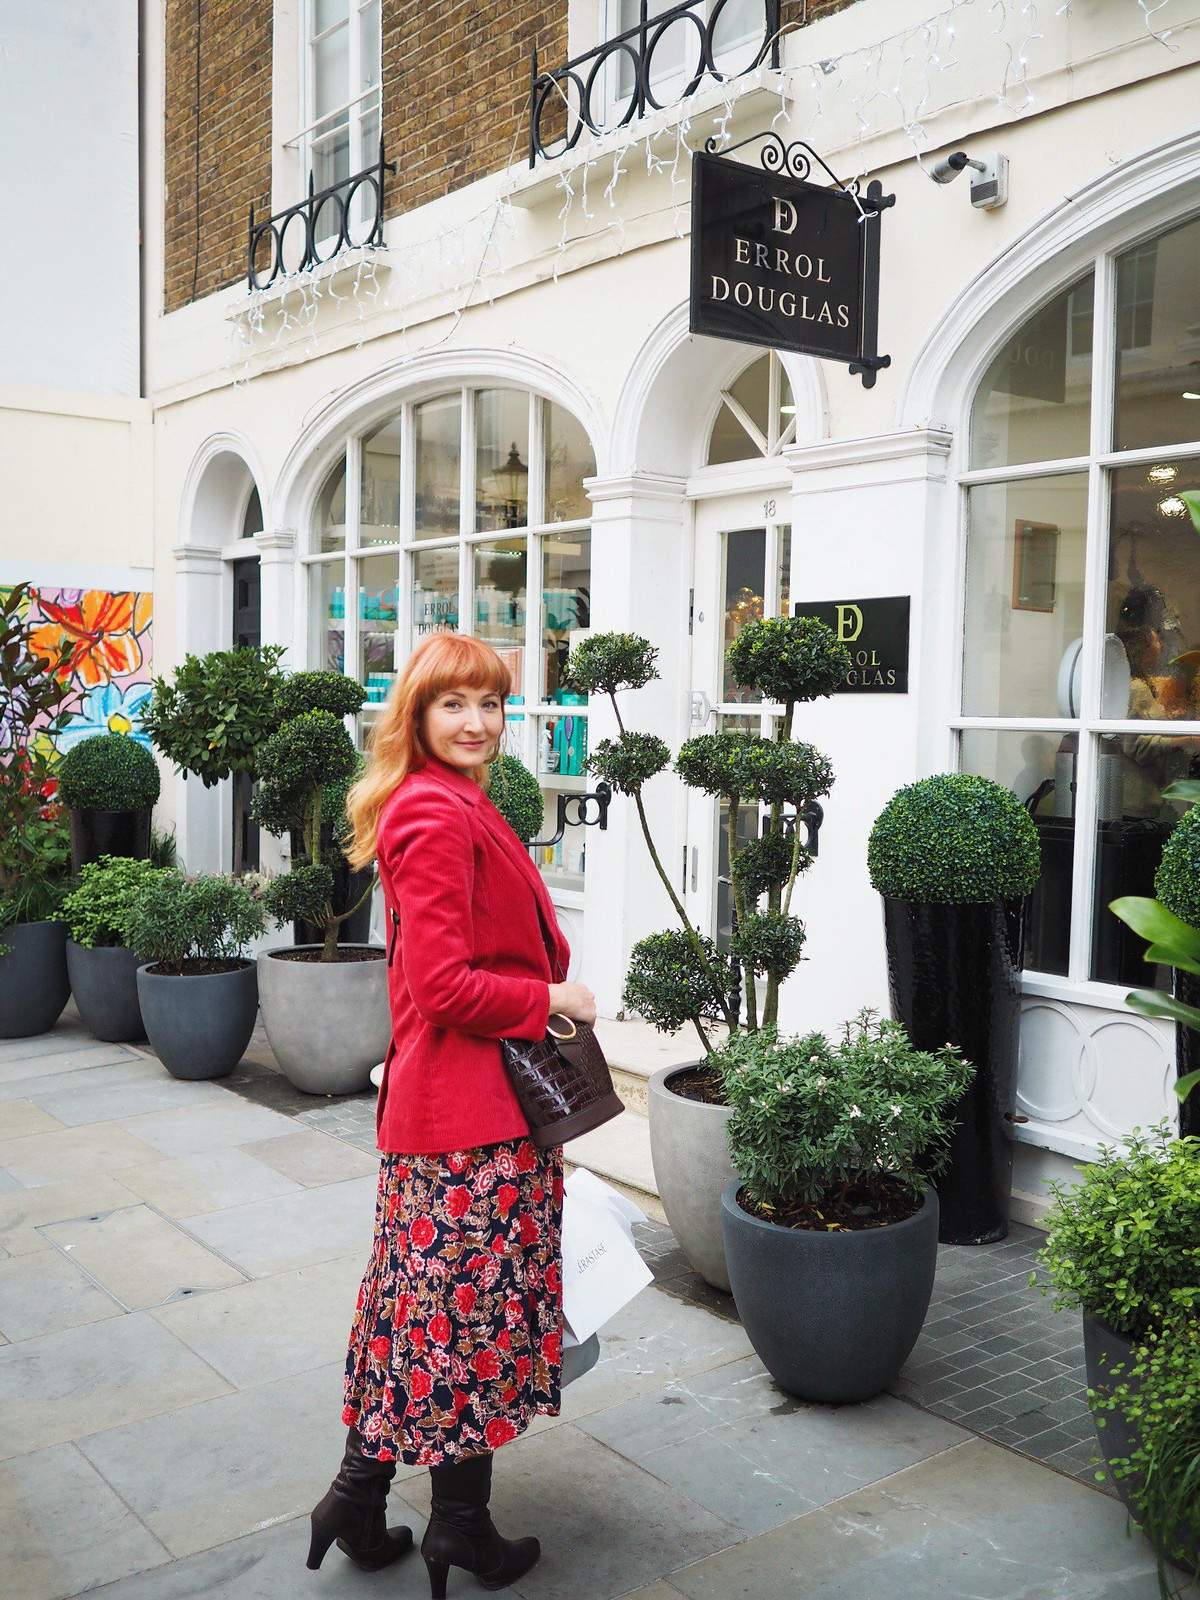 A Day Out in London for Adults: Belgravia (Errol Douglas hair salon) | Not Dressed As Lamb, a blog for over 40 women